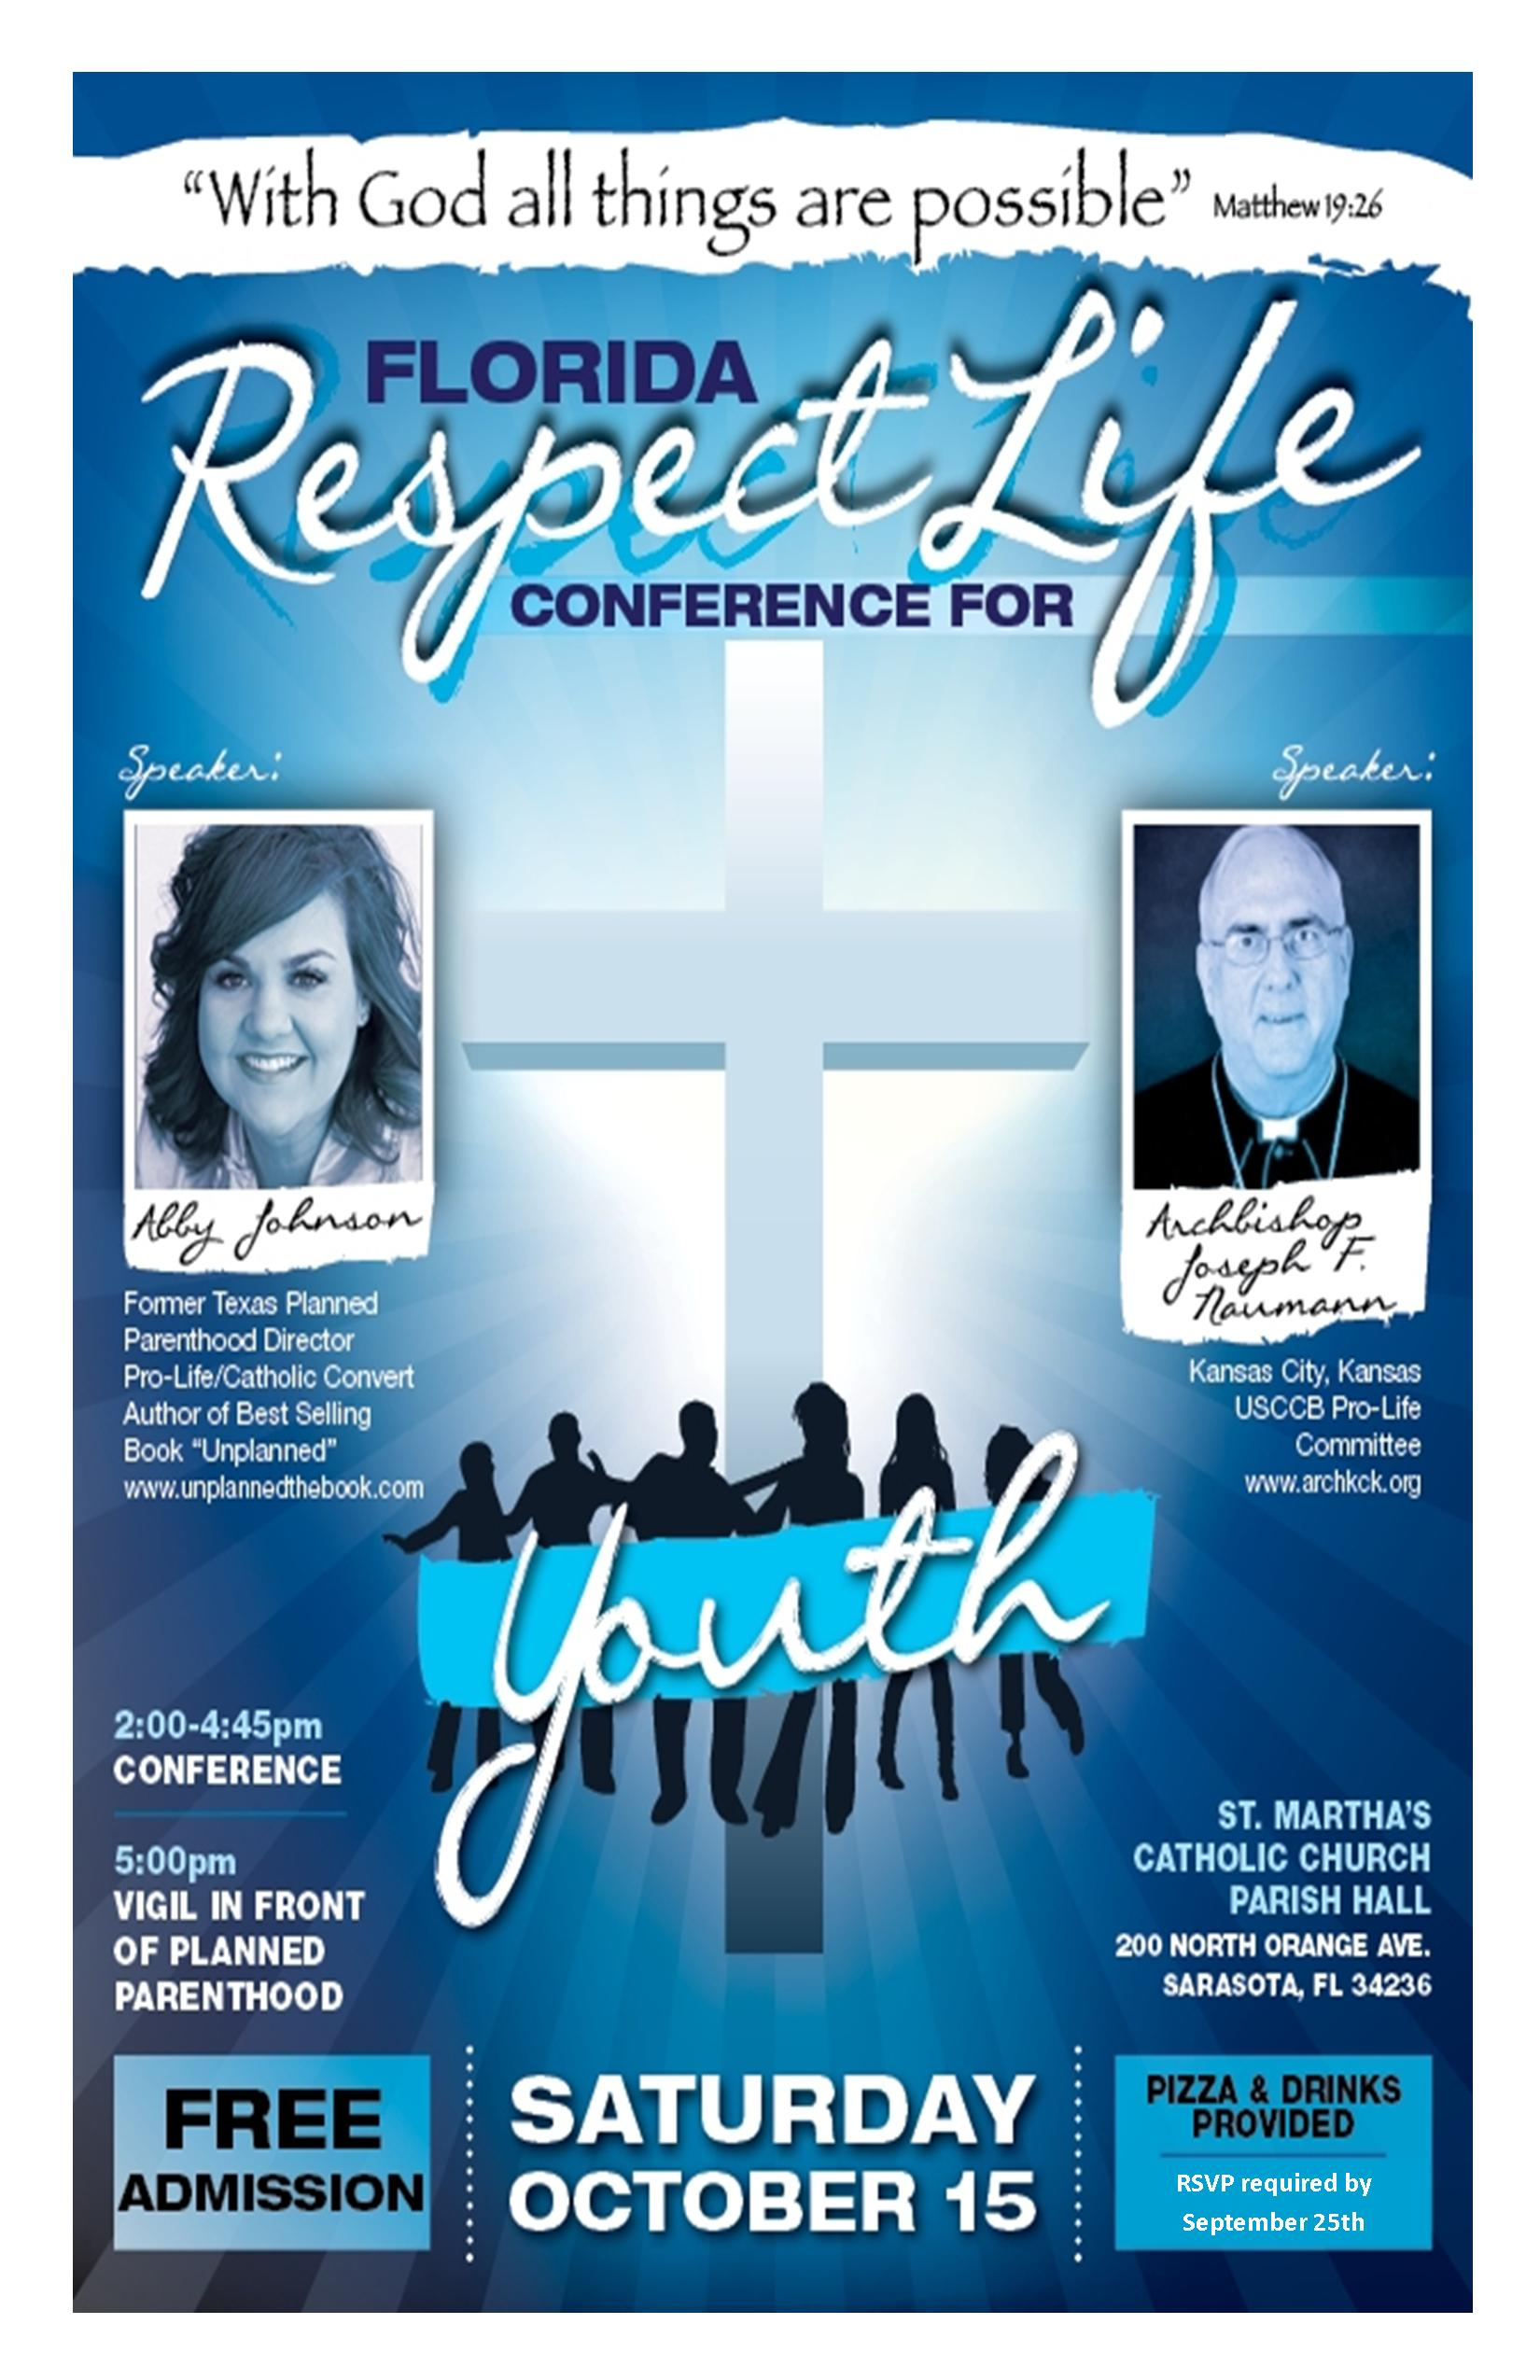 Florida Respect Life Conference for Youth 2011 flyer